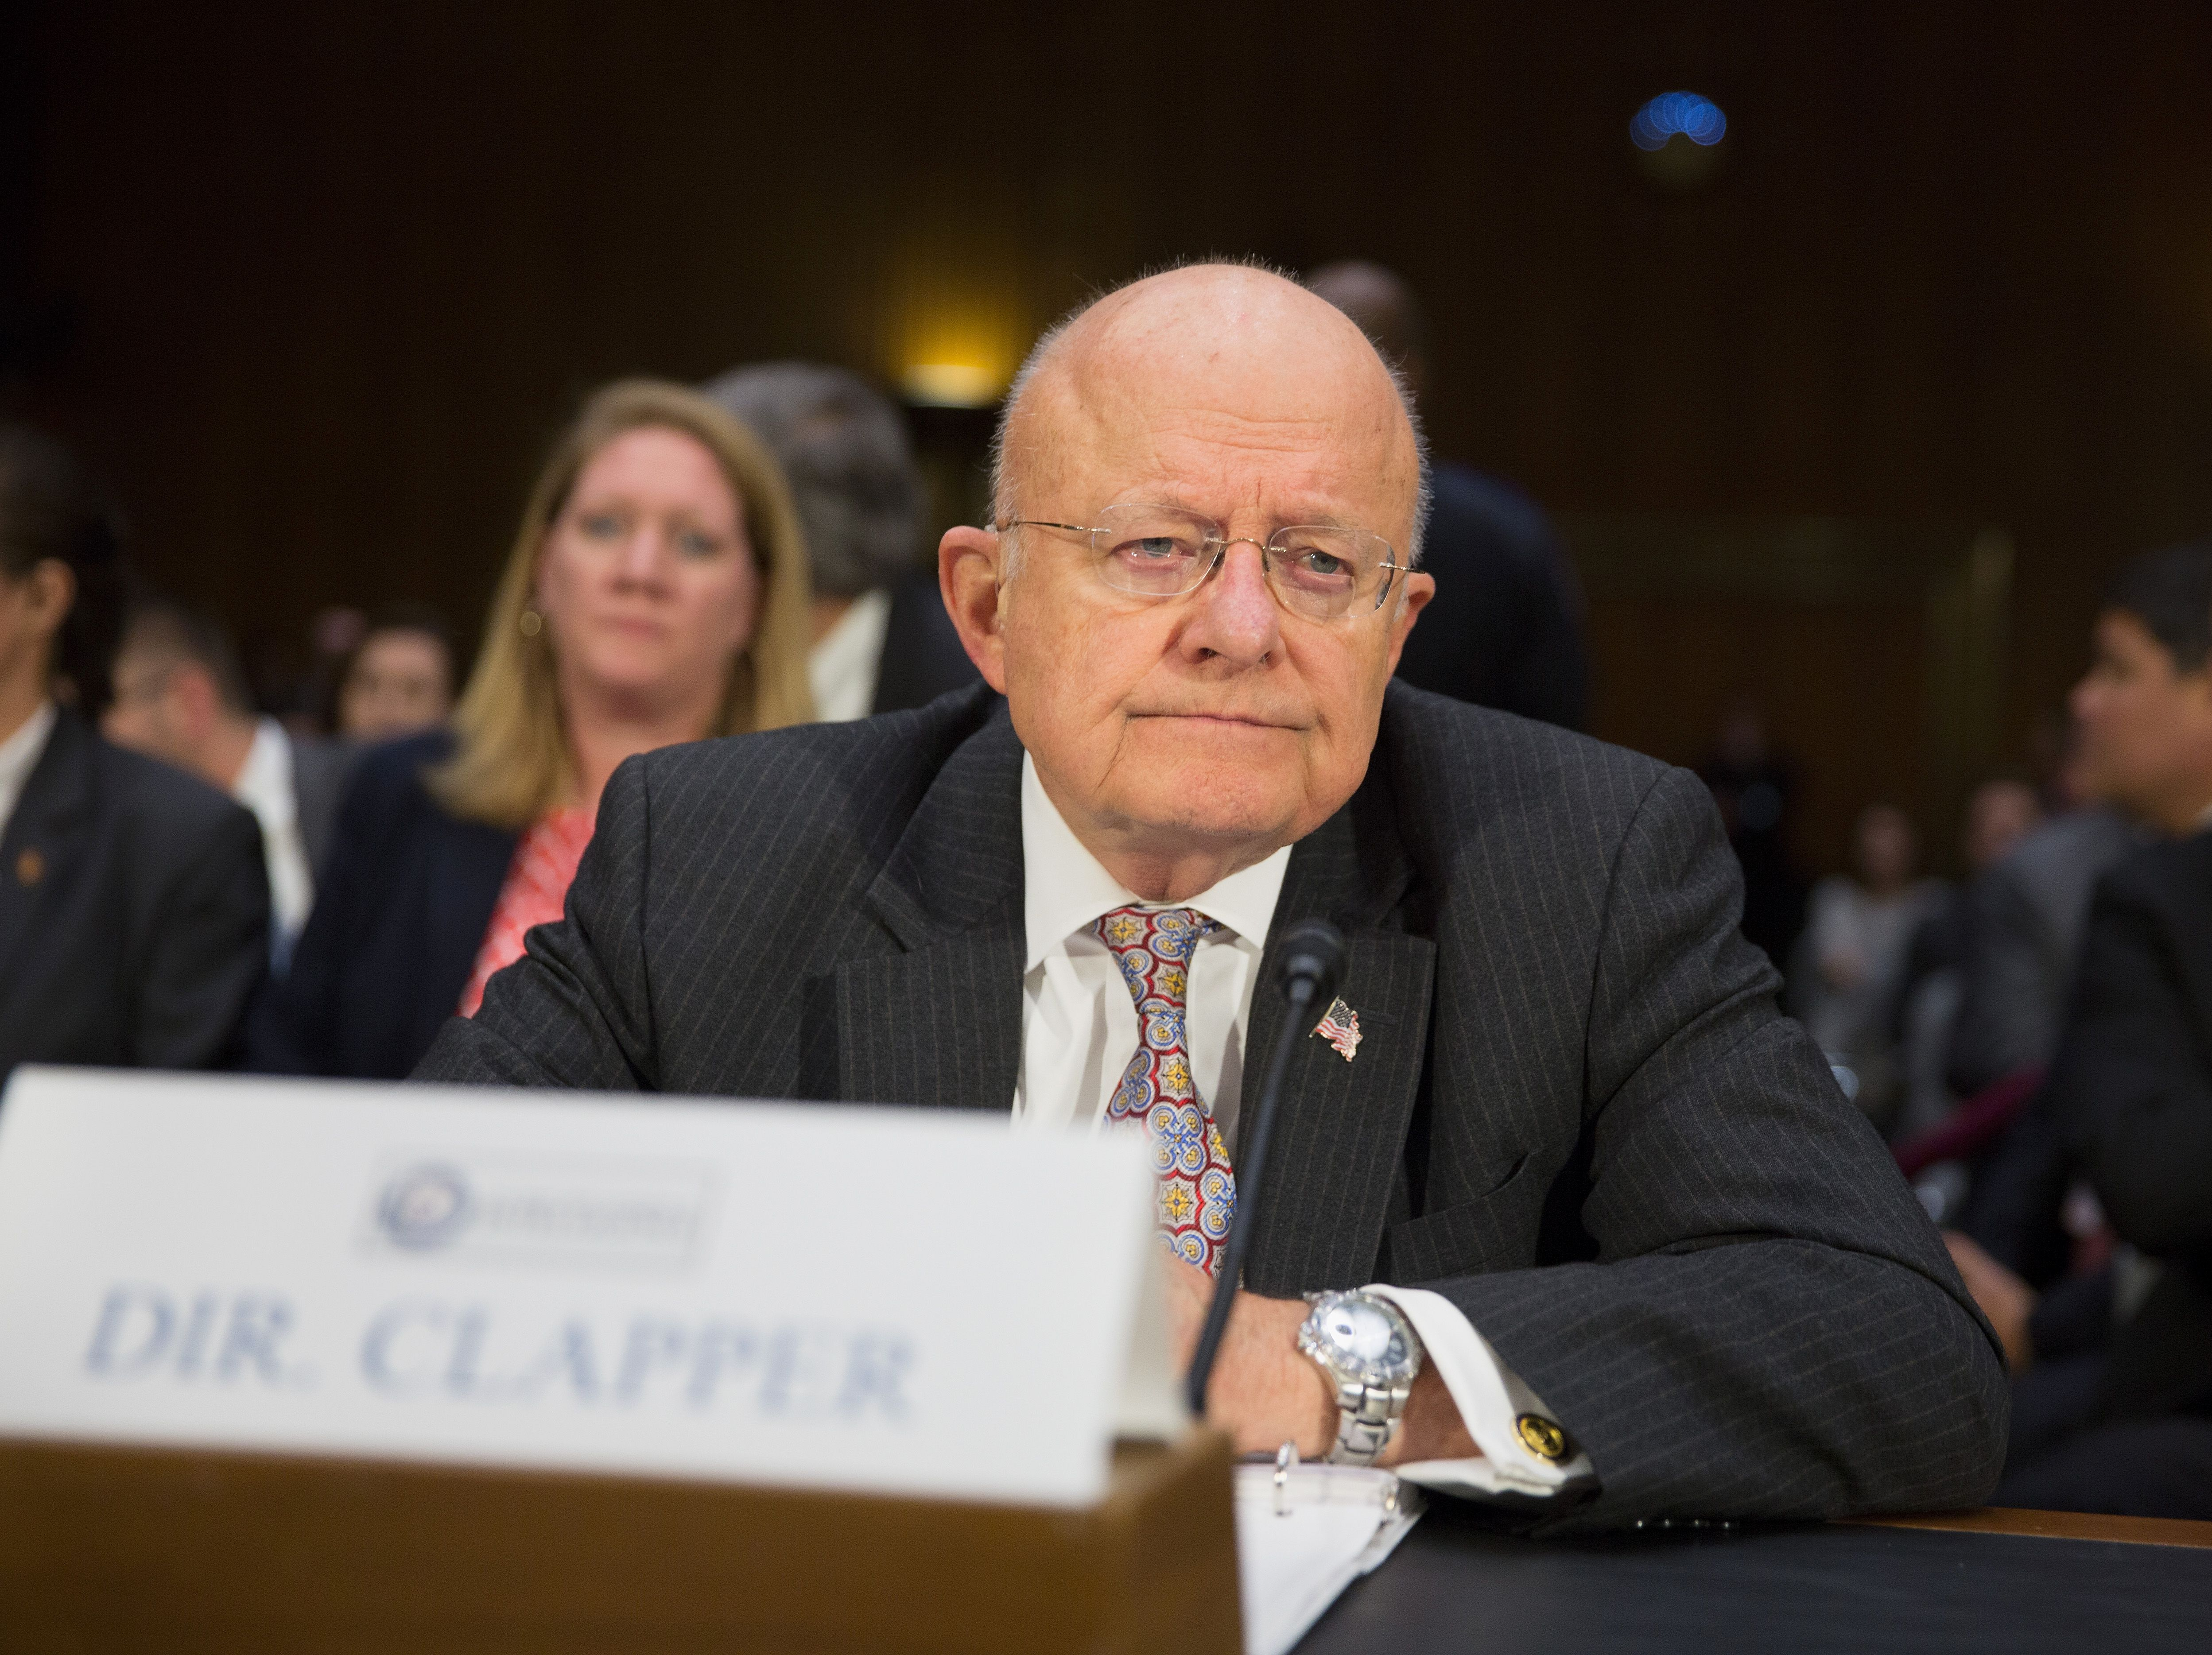 James Clapper, Director of National Intelligence, testifies during a Senate Armed Services Committee hearing on Russian Intelligence Activities on Capitol Hill in Washington, DC Jan. 10, 2017.